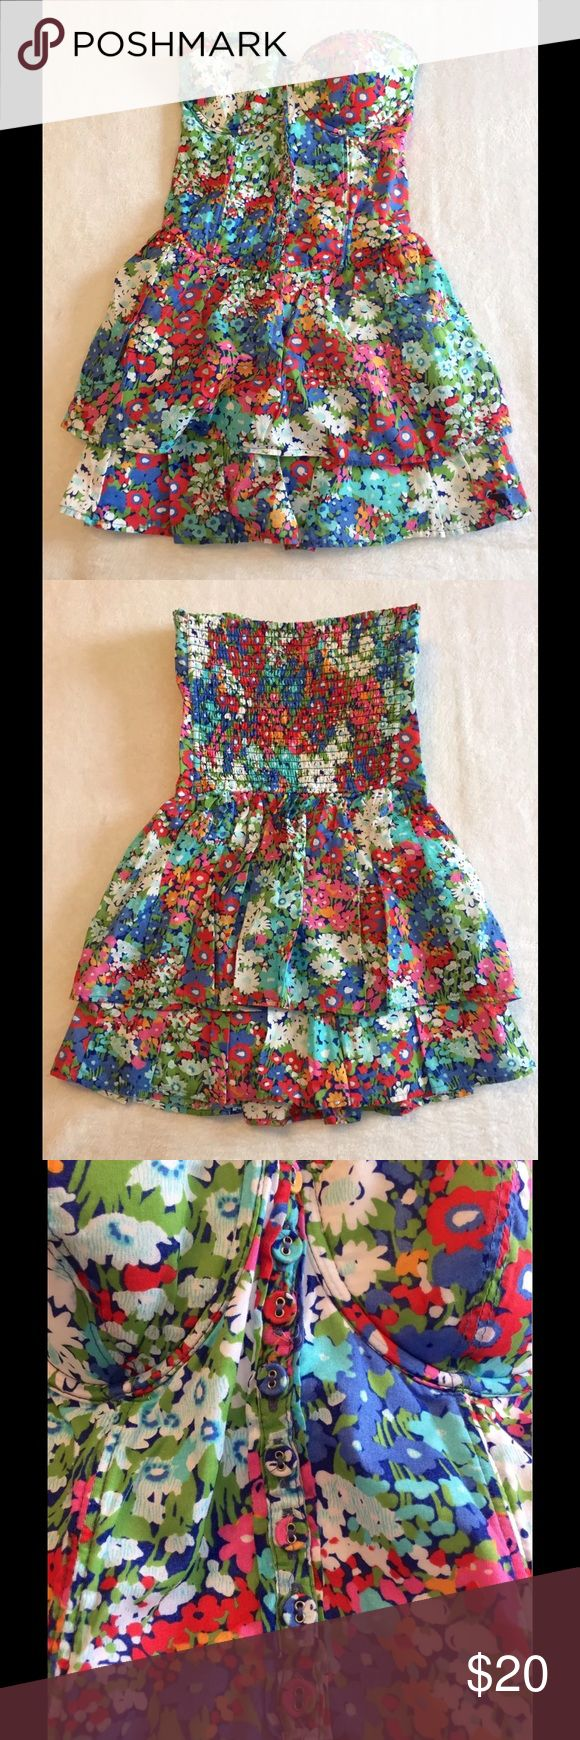 Abercrombie Fitch Strapless Floral Bustier Corset Abercrombie Fitch Strapless Top   Corset Bustier style  Button down front  Underwire lined cups  Stretchy back  Whole top is lined  Pretty Floral pattern  Two ruffles  Excellent condition Abercrombie & Fitch Tops Blouses